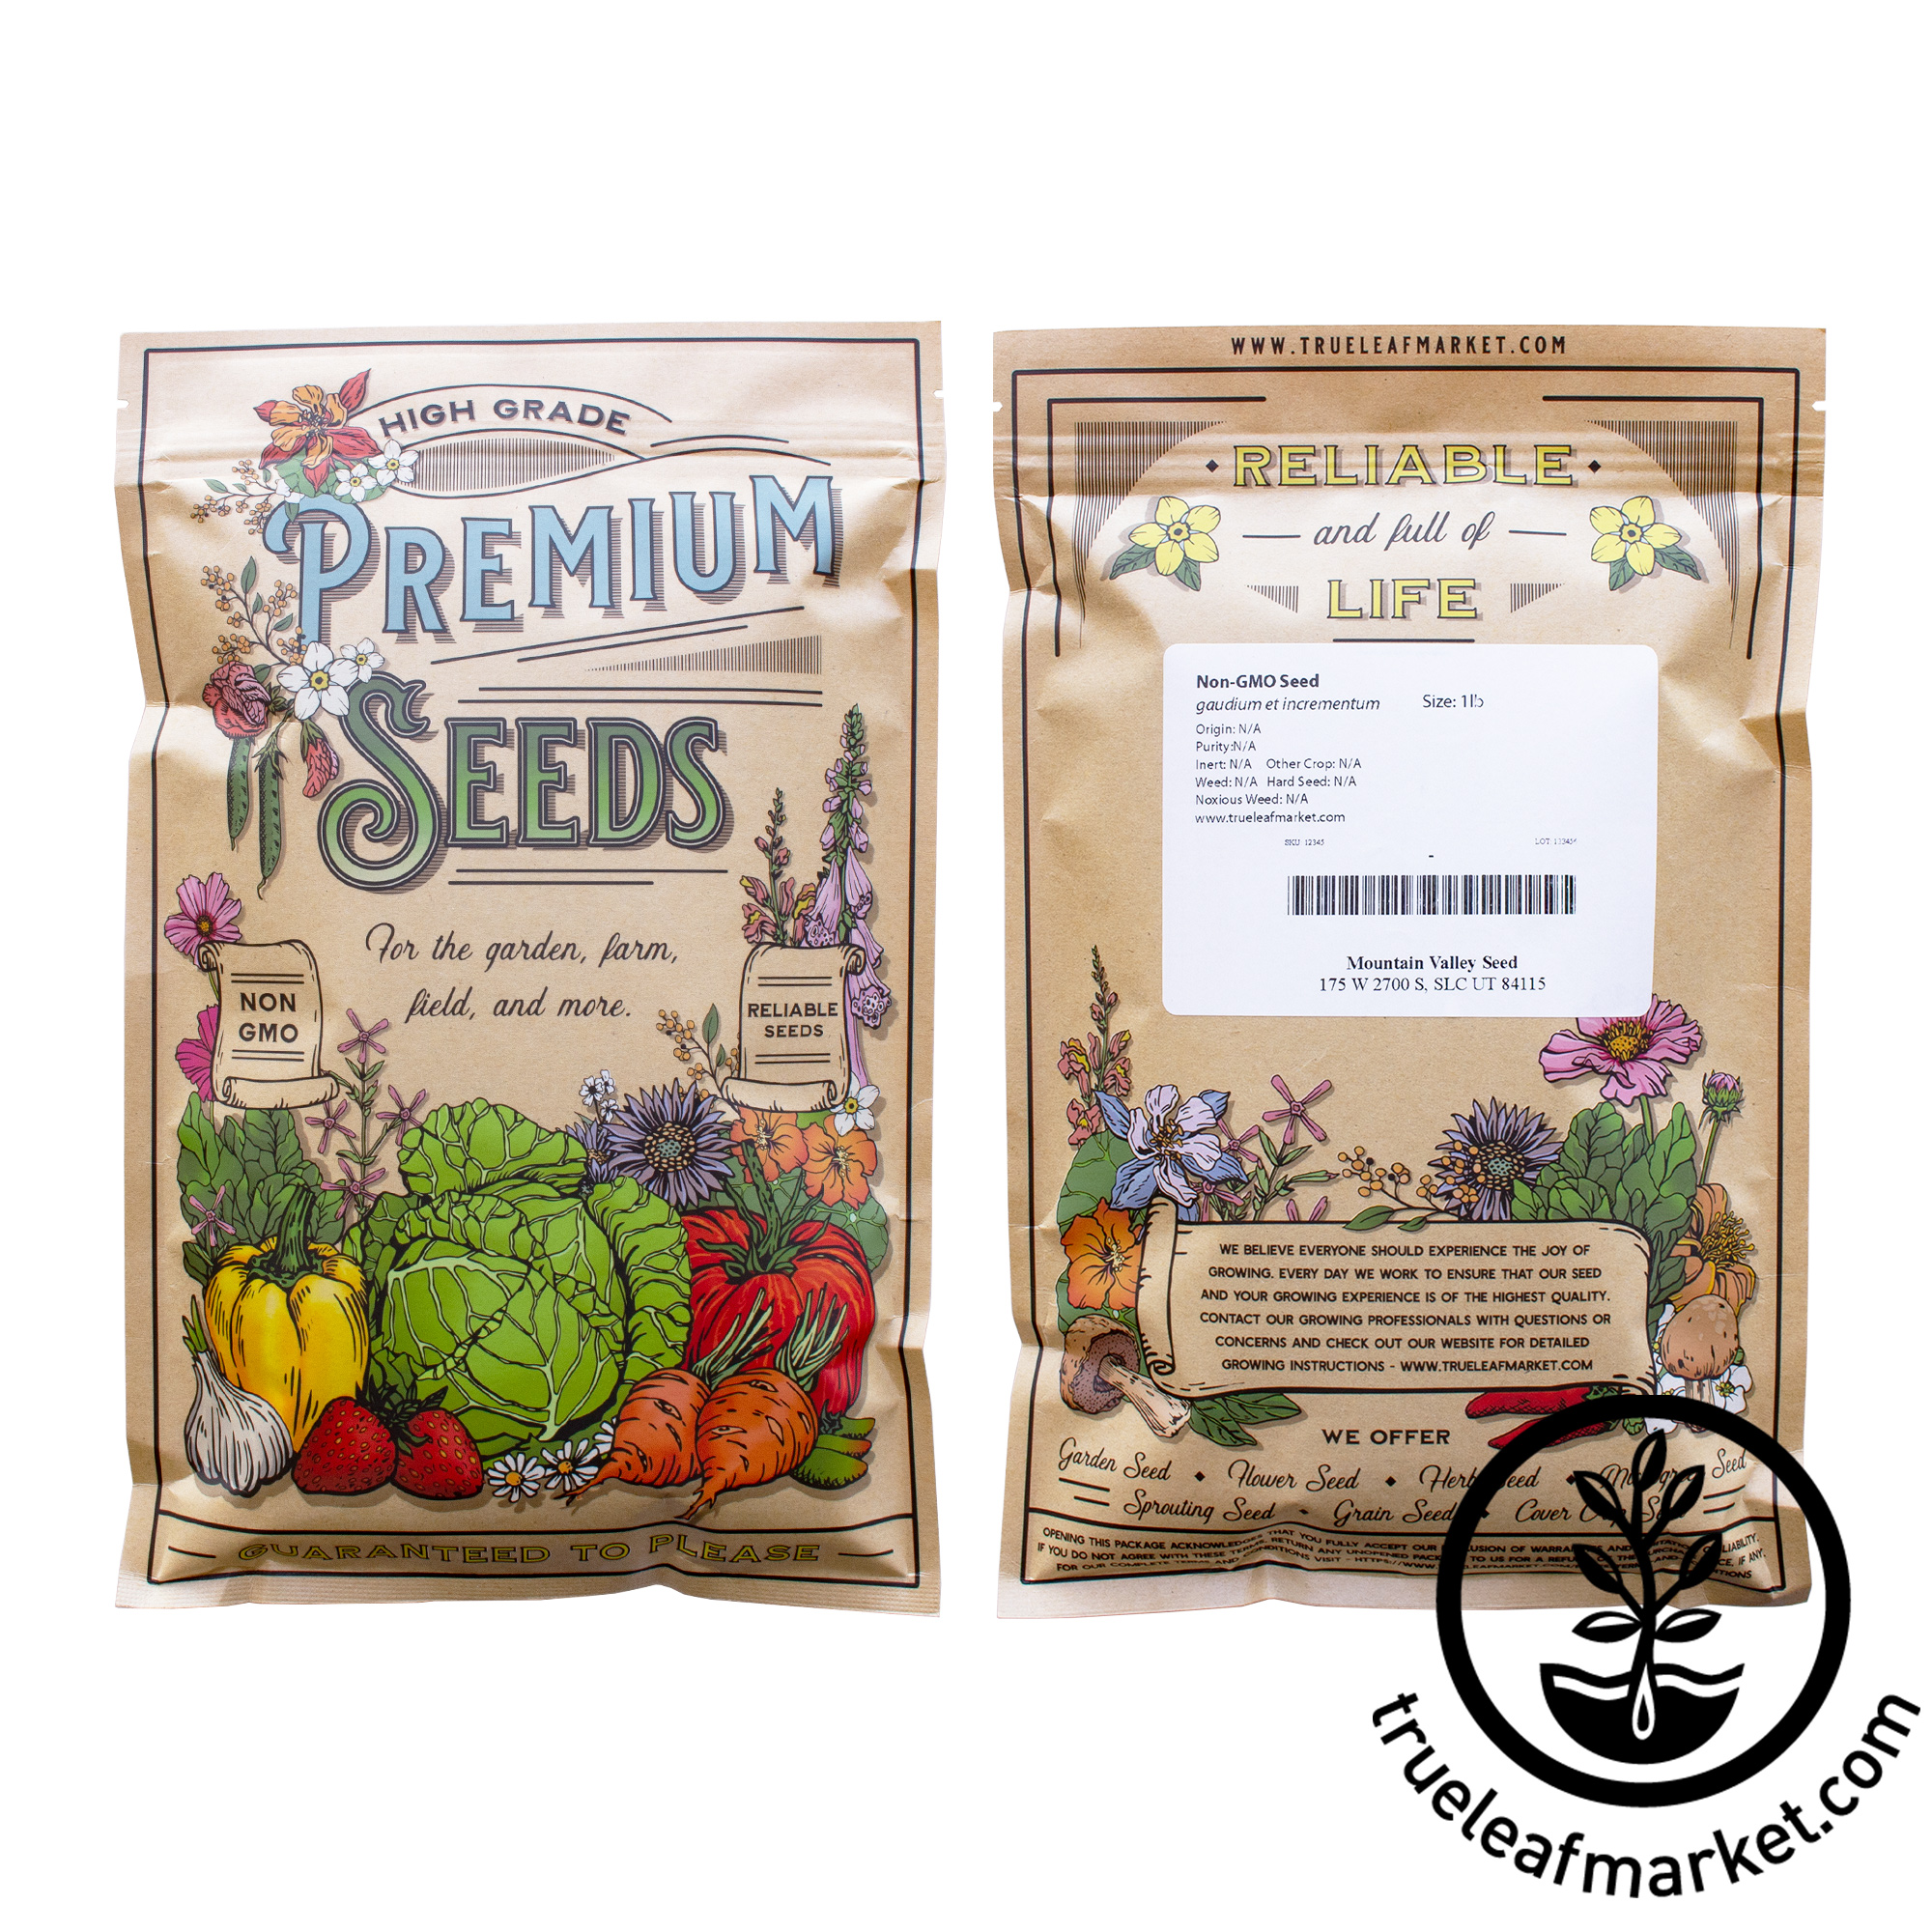 Non GMO Beet Growing Seeds